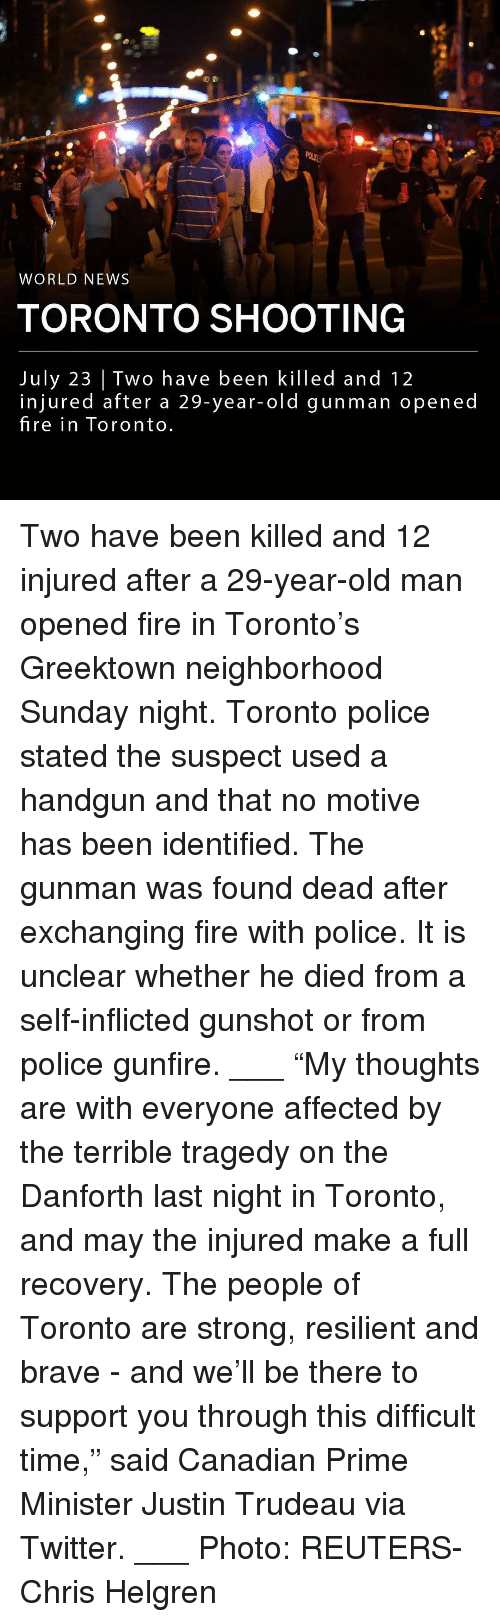 "handgun: WORLD NEWS  TORONTO SHOOTING  July 23 | Two have been killed and 12  injured after a 29-year-old gunman opened  fire in Toronto Two have been killed and 12 injured after a 29-year-old man opened fire in Toronto's Greektown neighborhood Sunday night. Toronto police stated the suspect used a handgun and that no motive has been identified. The gunman was found dead after exchanging fire with police. It is unclear whether he died from a self-inflicted gunshot or from police gunfire. ___ ""My thoughts are with everyone affected by the terrible tragedy on the Danforth last night in Toronto, and may the injured make a full recovery. The people of Toronto are strong, resilient and brave - and we'll be there to support you through this difficult time,"" said Canadian Prime Minister Justin Trudeau via Twitter. ___ Photo: REUTERS-Chris Helgren"